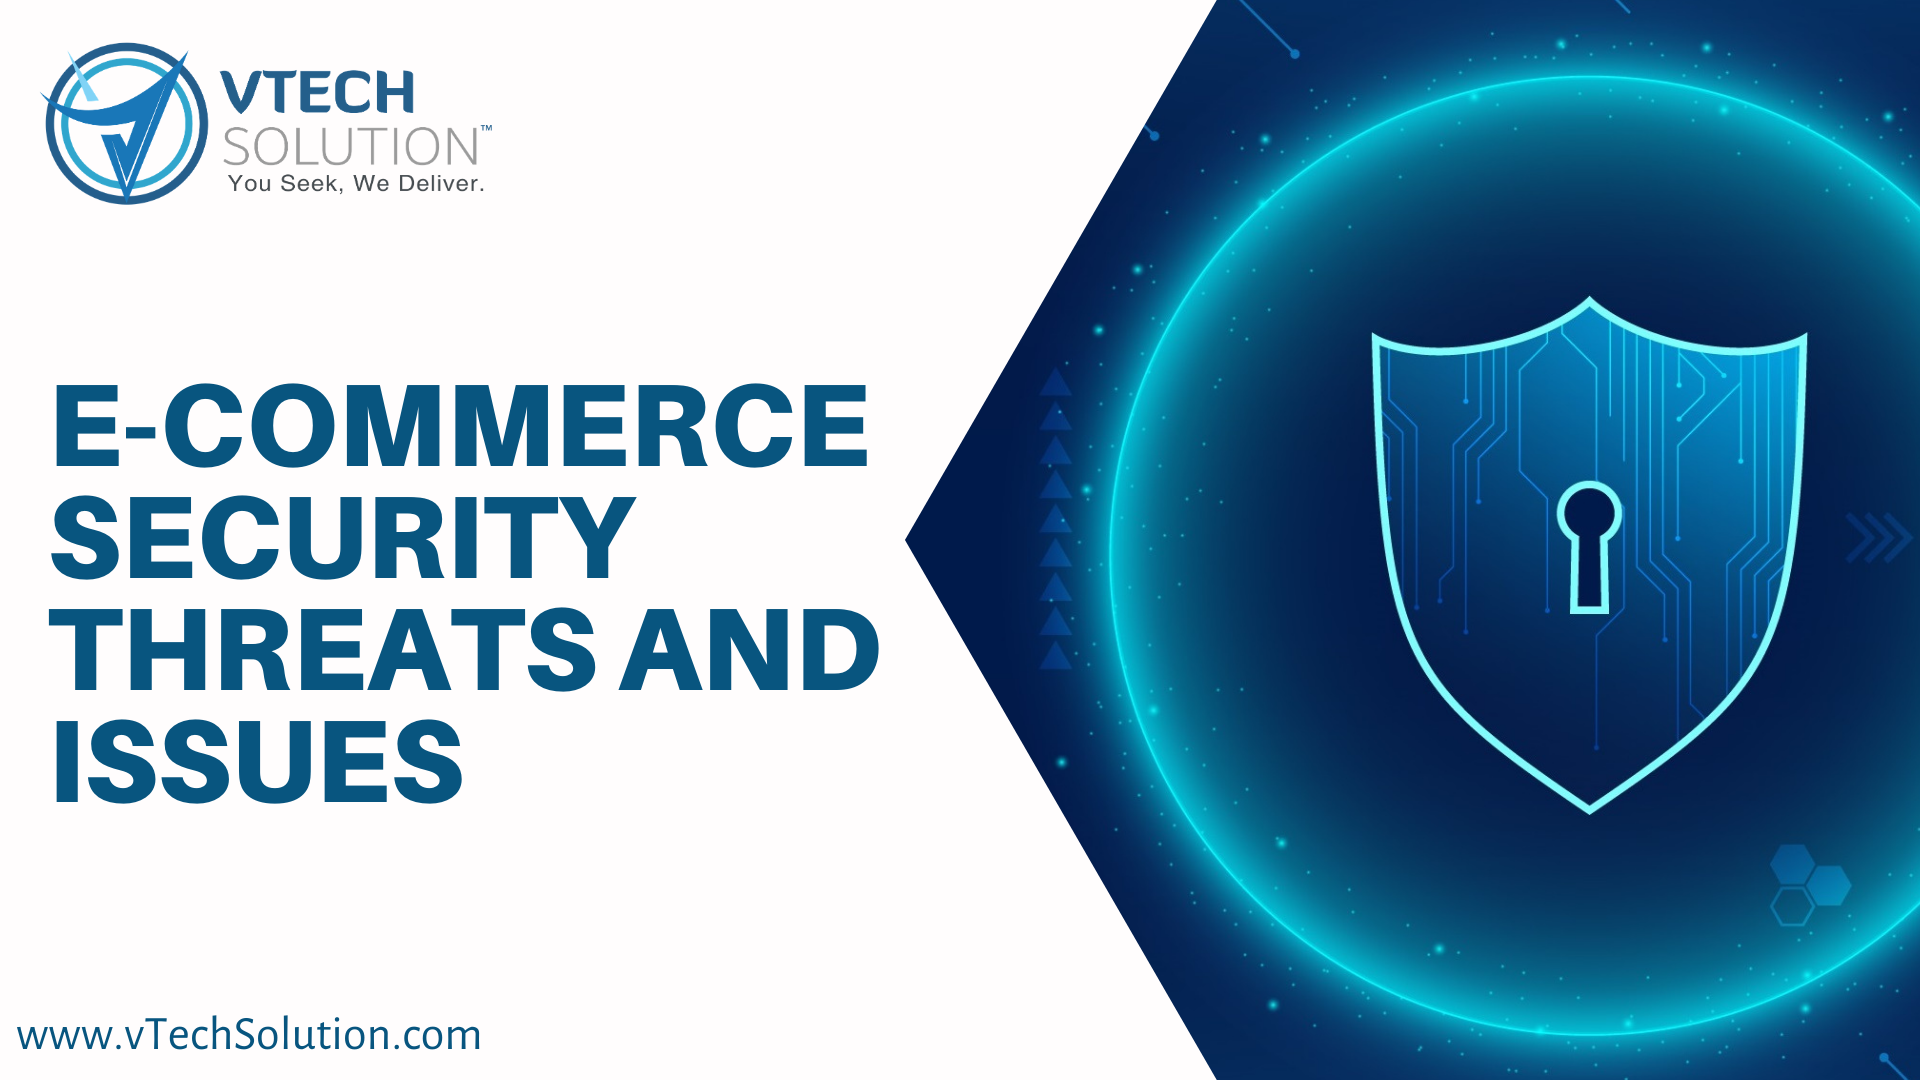 Security Threats Issues E Commerce Businesses Frequently Face Vtech Solution